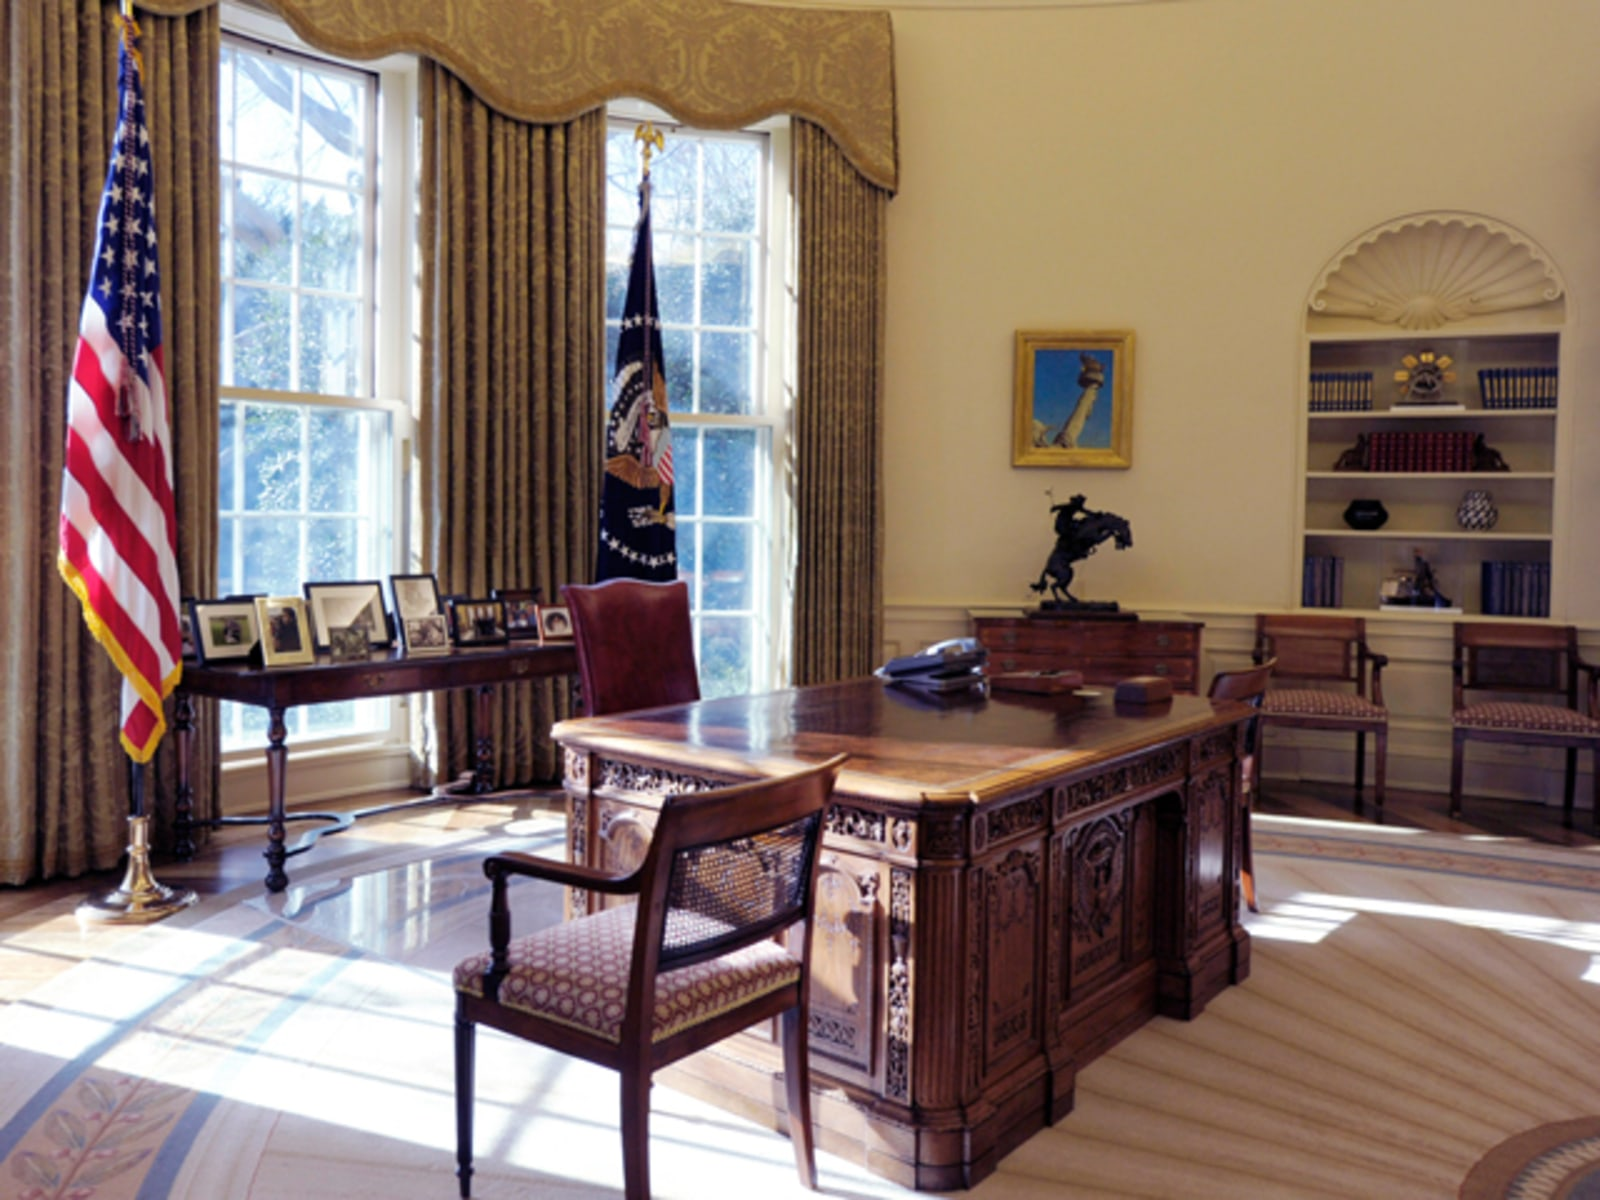 Image: Obama's oval office